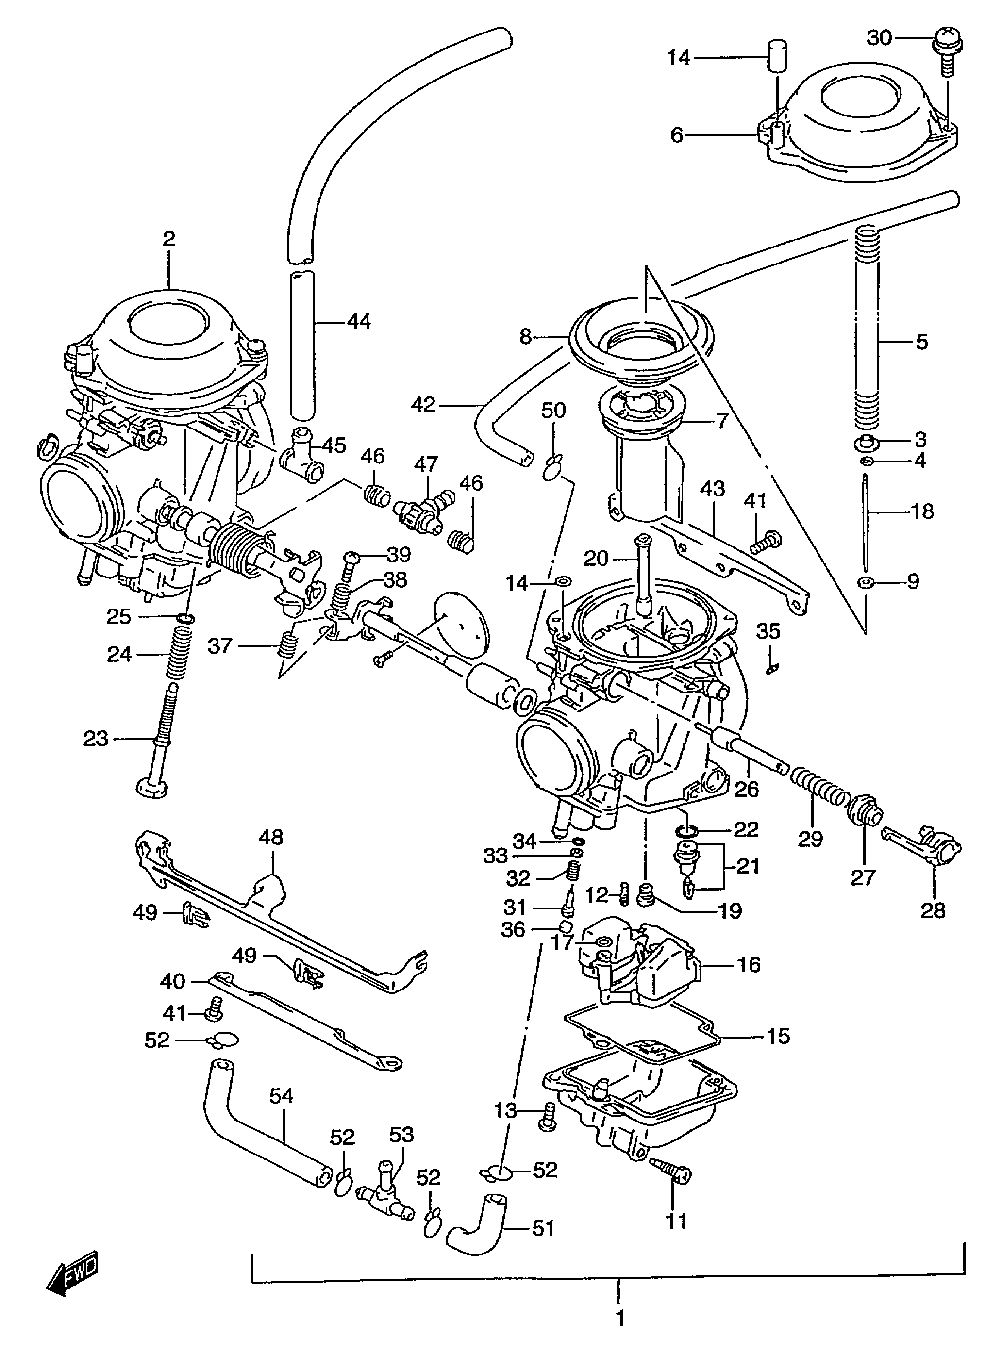 Zv 0227 Furthermore Circuit Wiring Diagram On Suzuki Reno Wiring Diagram Wiring Diagram